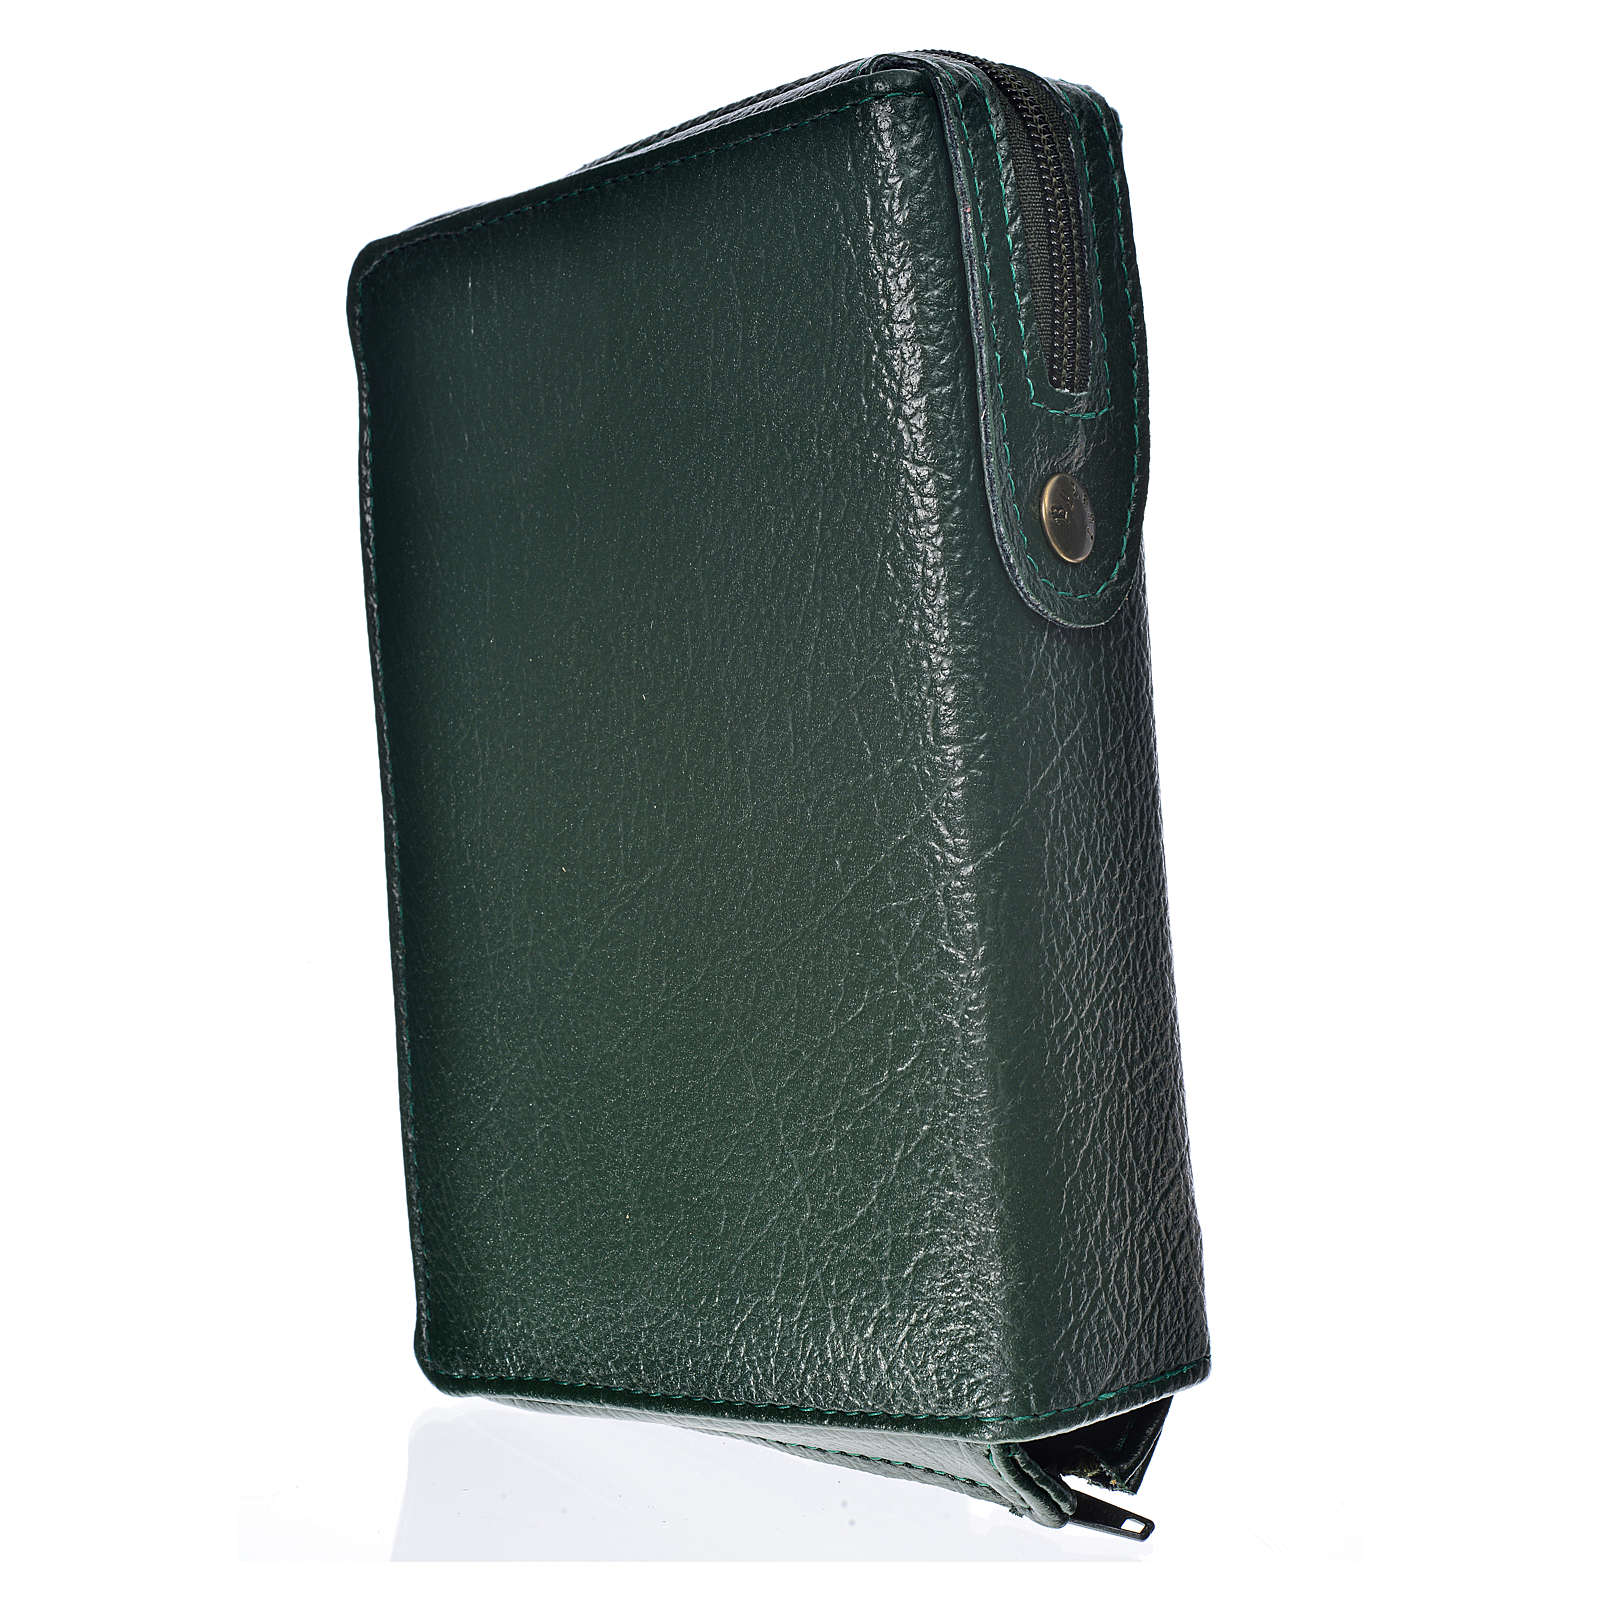 Cover Liturgy of the Hours green bonded leather with Holy Family image 4